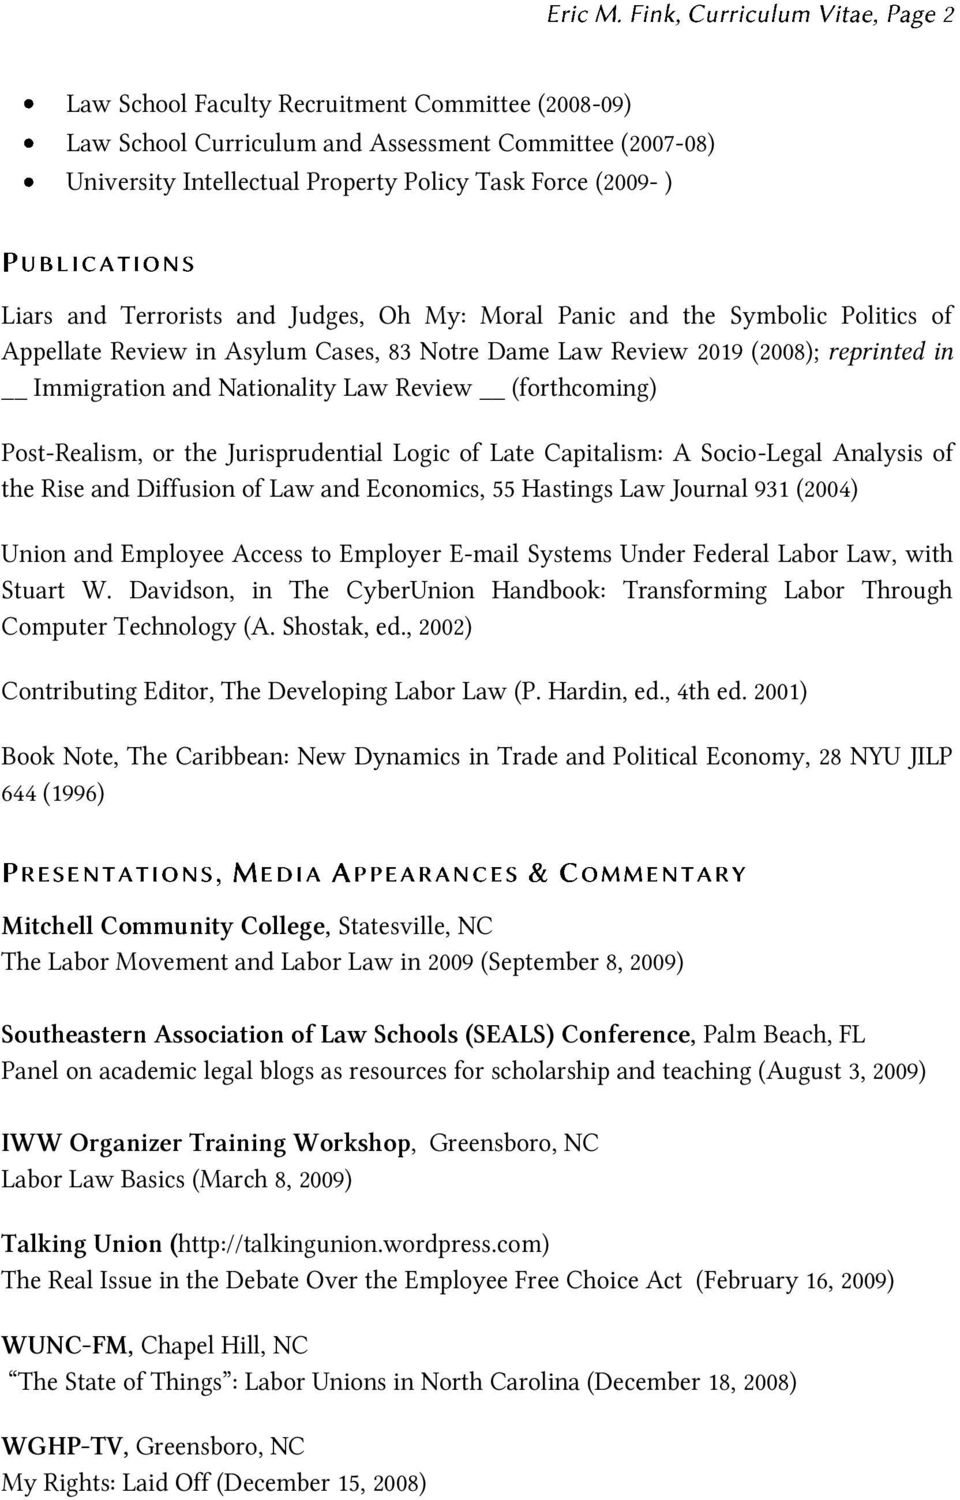 Post-Realism, or the Jurisprudential Logic of Late Capitalism: A Socio-Legal Analysis of the Rise and Diffusion of Law and Economics, 55 Hastings Law Journal 931 (2004) Union and Employee Access to